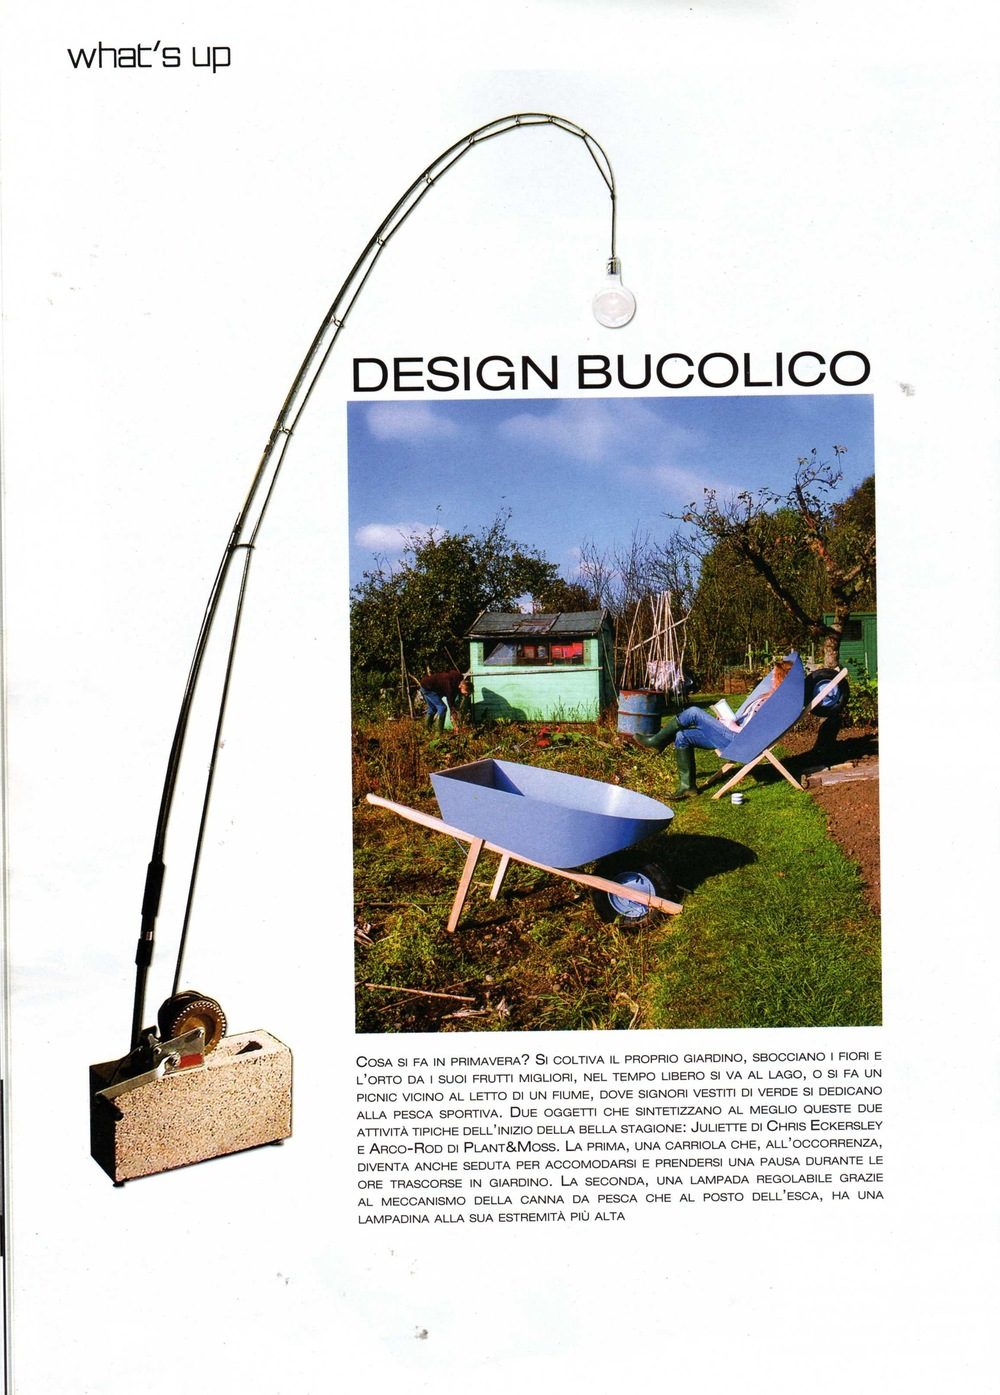 Publication: CasaD, April/May 2010